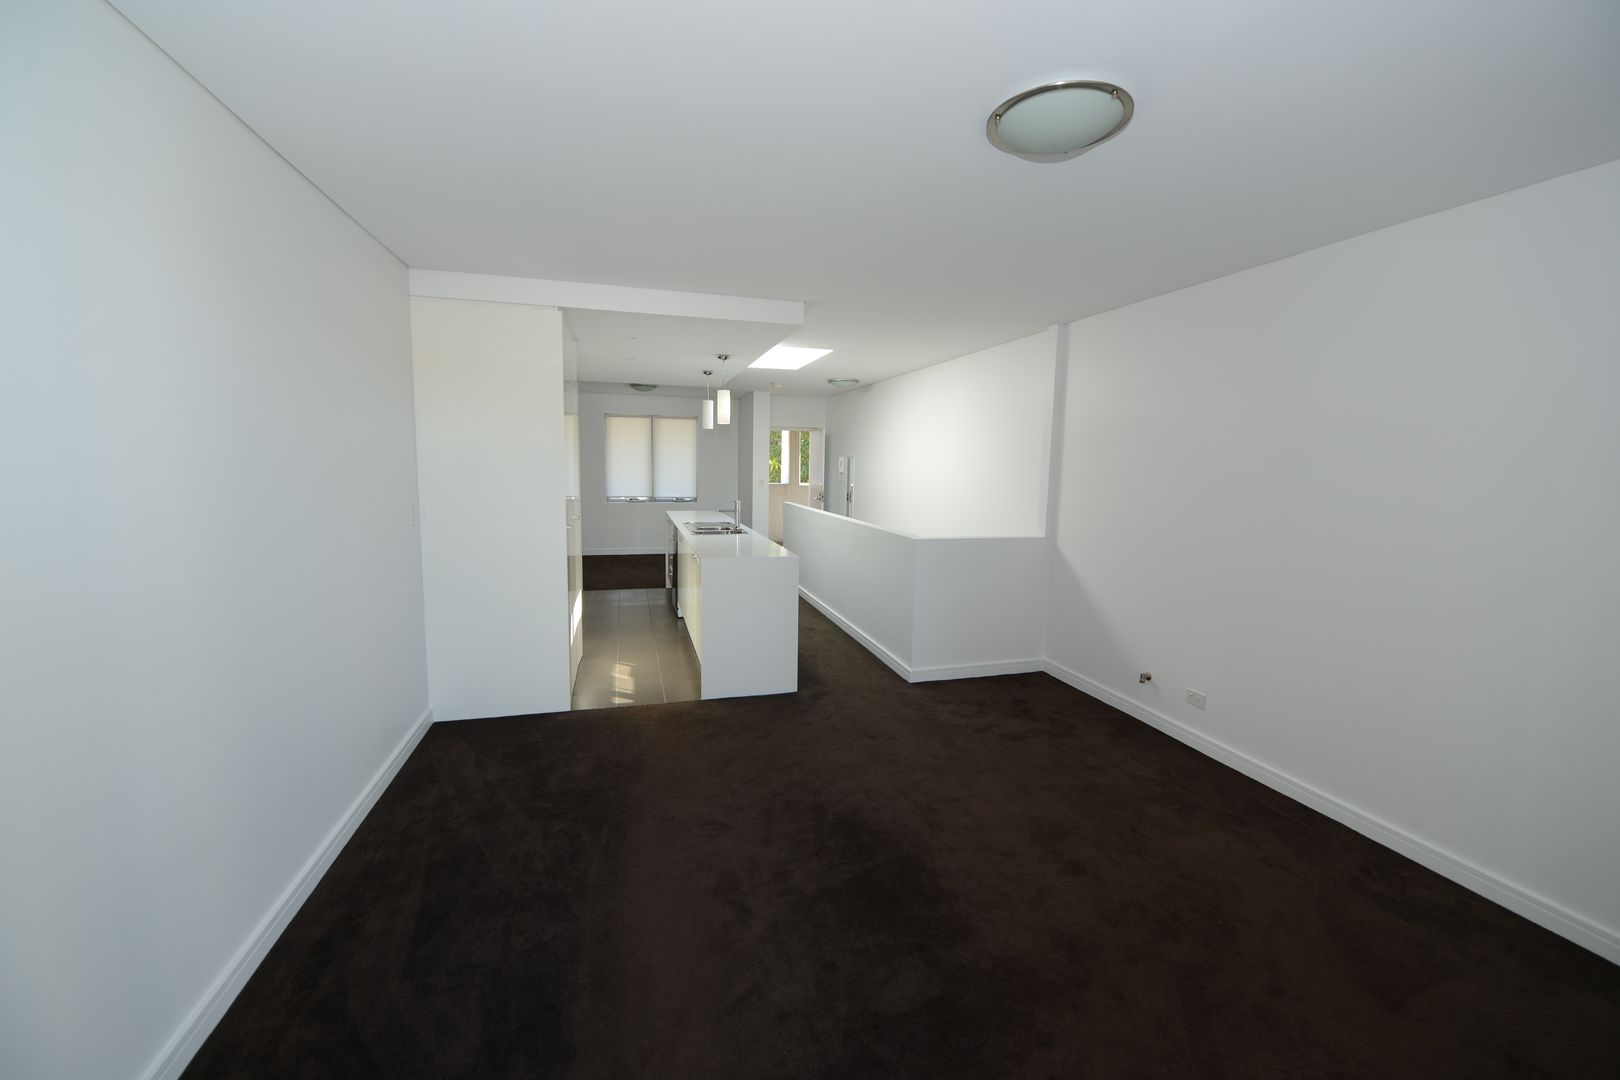 82/525 Illawarra, Marrickville NSW 2204, Image 1